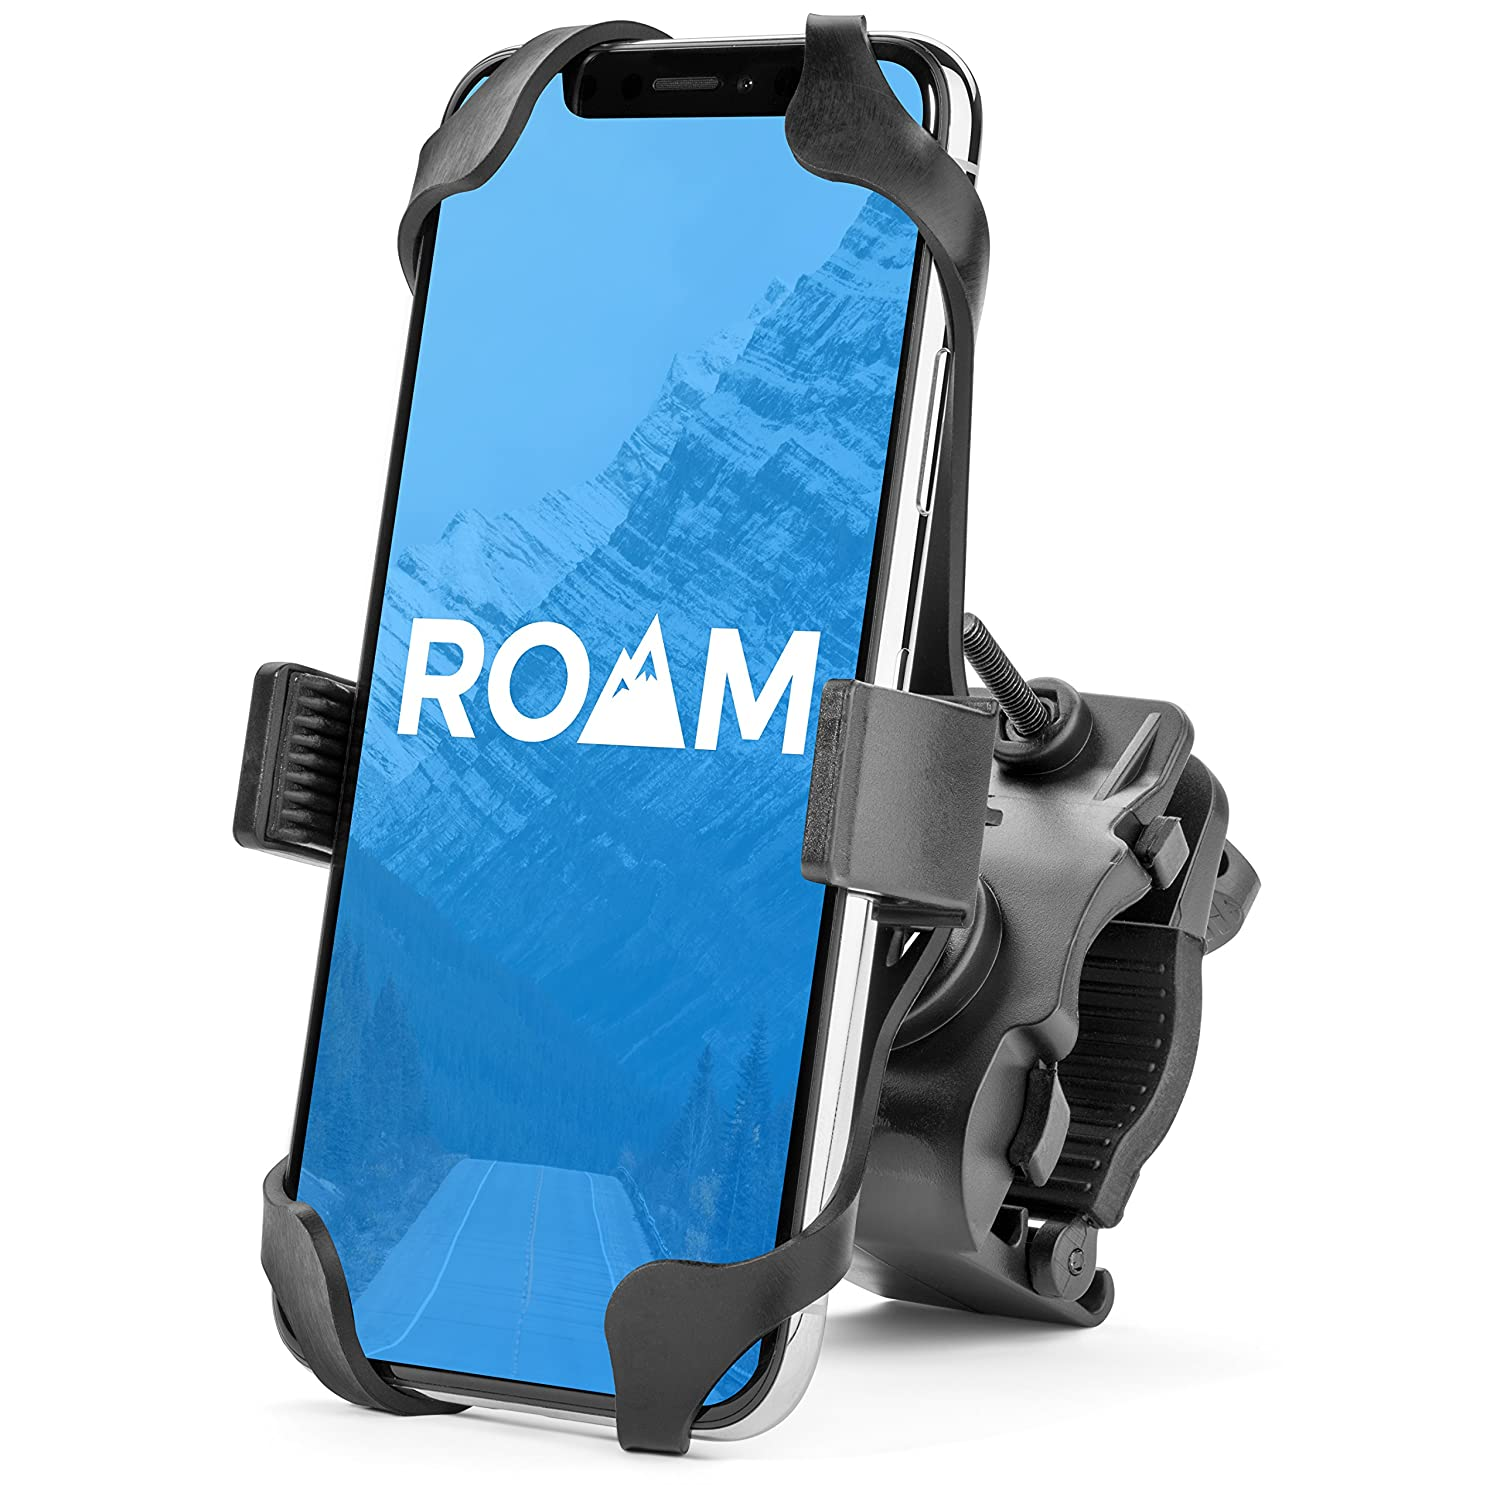 Roam Universal Premium Bike Phone Mount For Motorcycle - Bike Handlebars, Adjustable, Fits IPhone X, 8 , 8 Plus, 7 , 7 Plus, IPhone 6s , 6s Plus, Galaxy S7, S6, S5, Holds Phones Up To 3.5' Wide